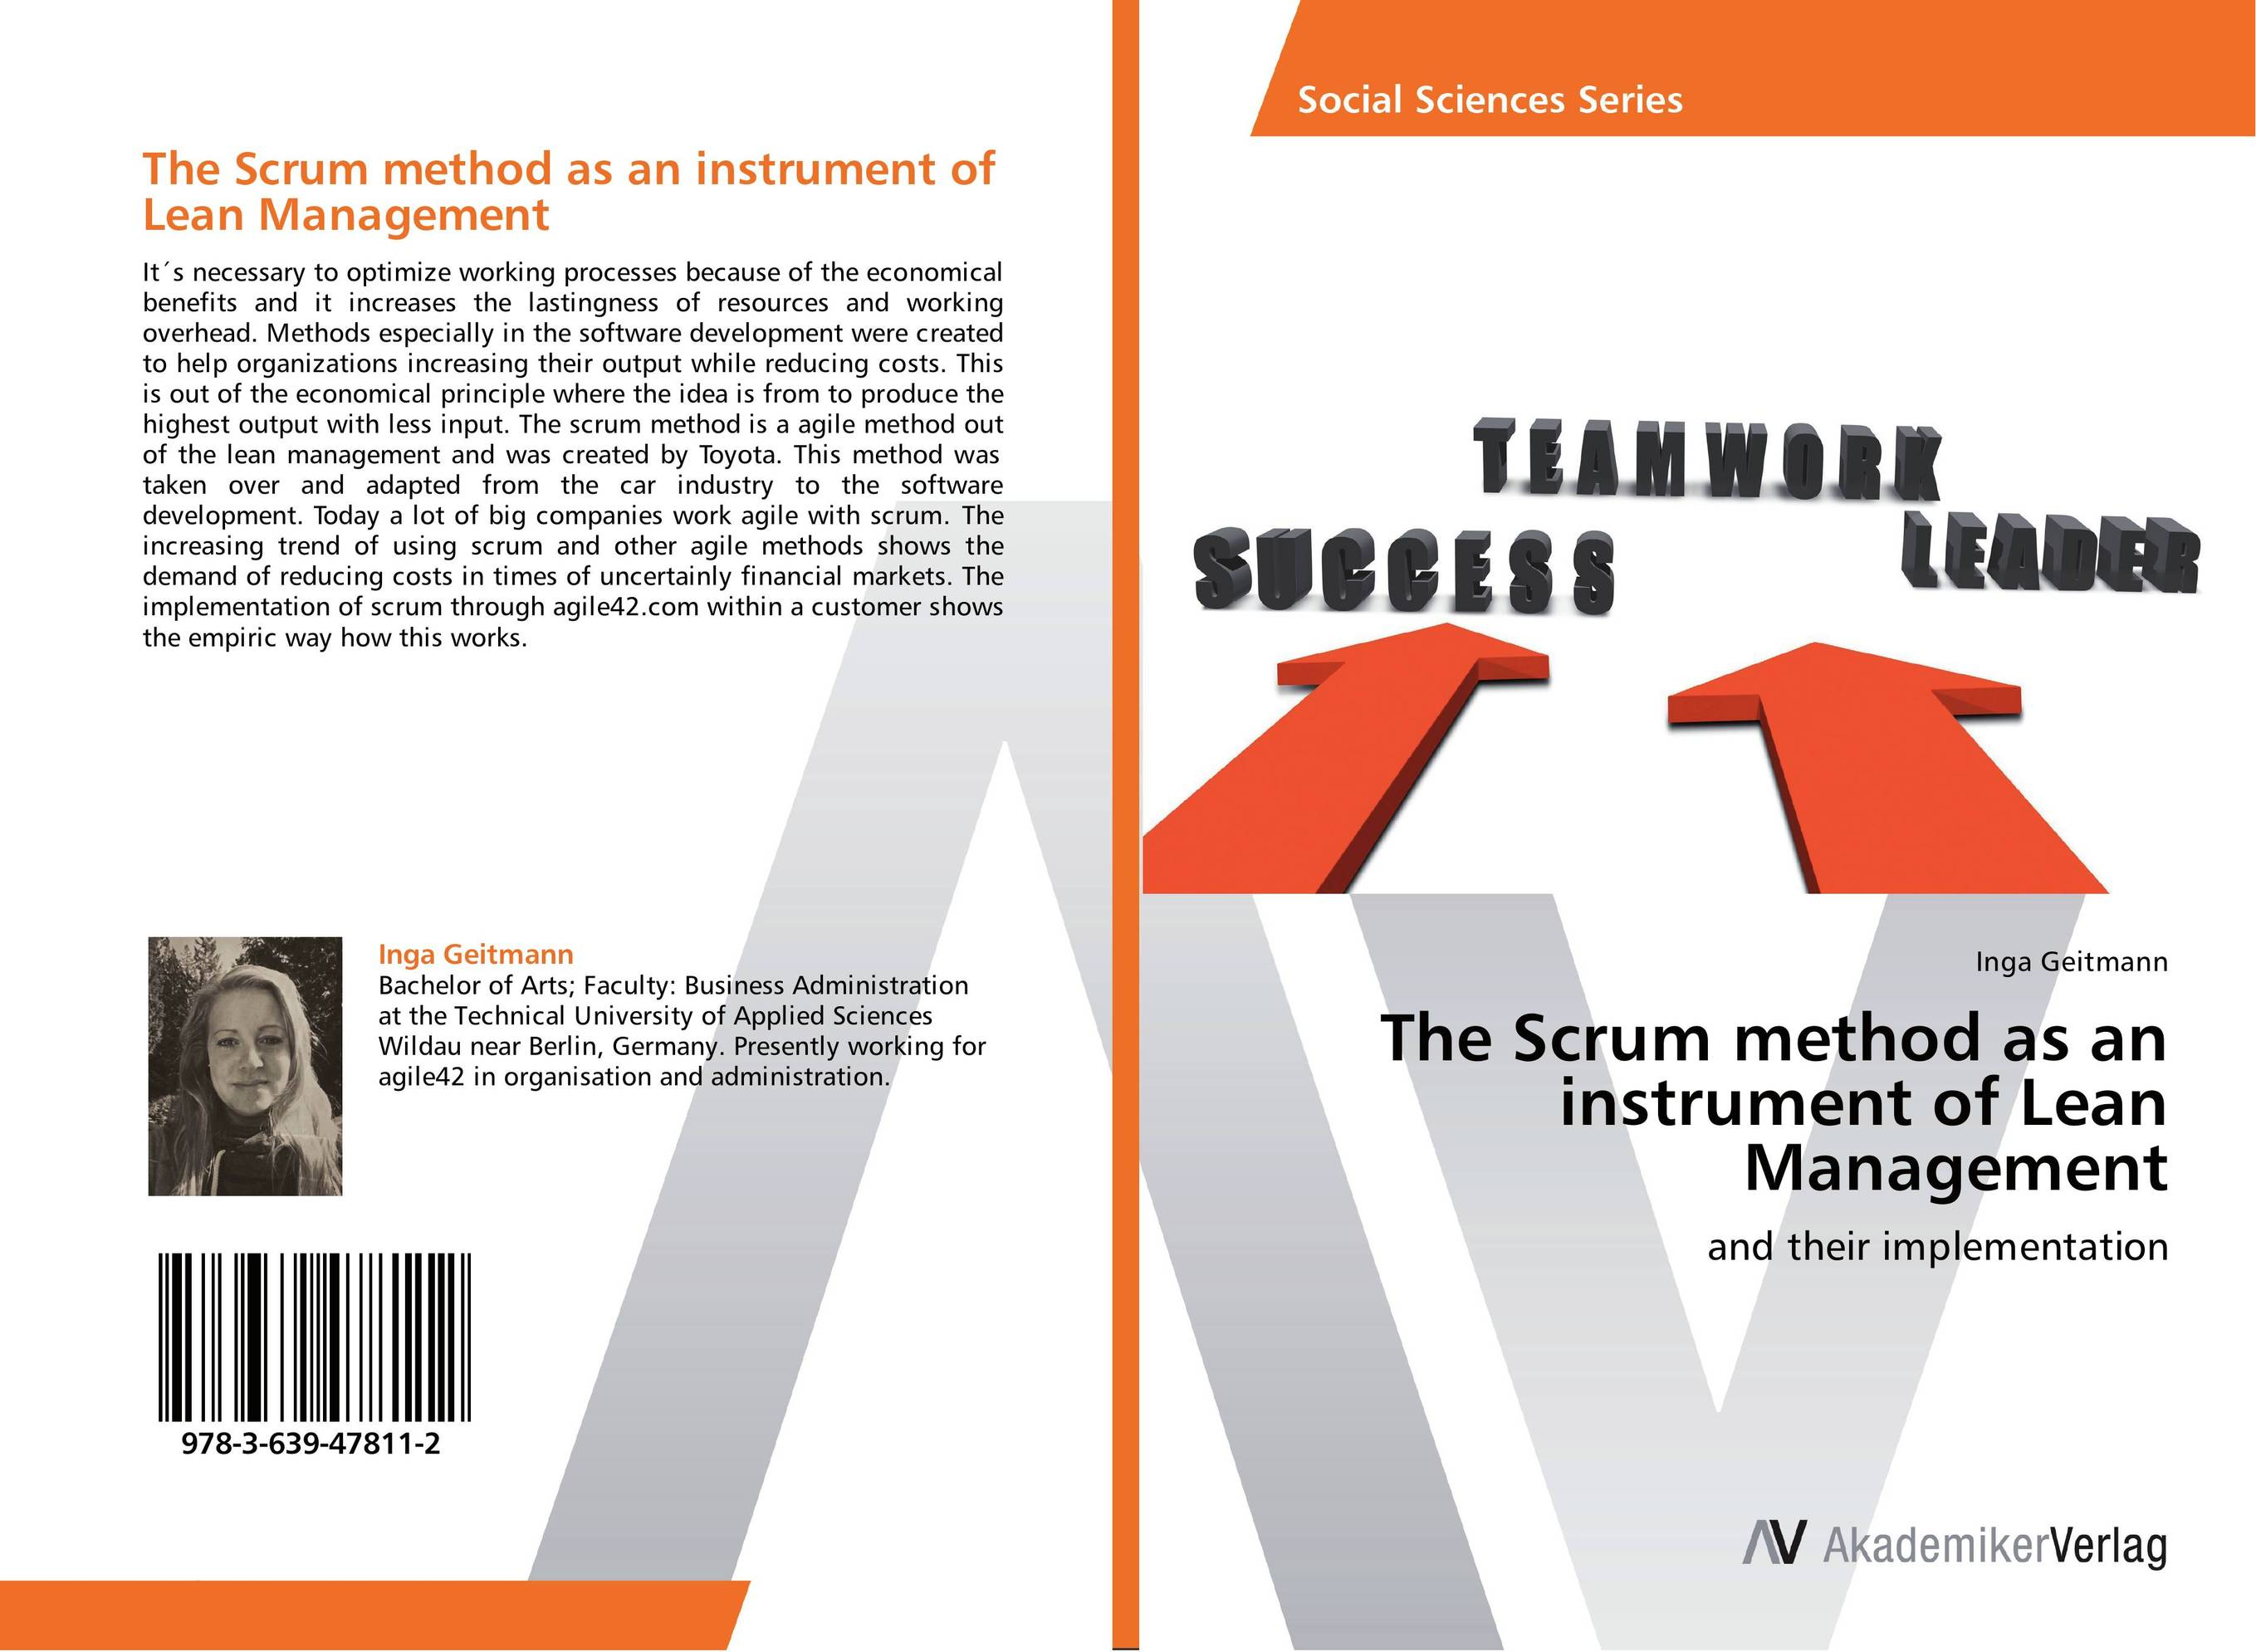 The Scrum method as an instrument of Lean Management john earley the lean book of lean a concise guide to lean management for life and business